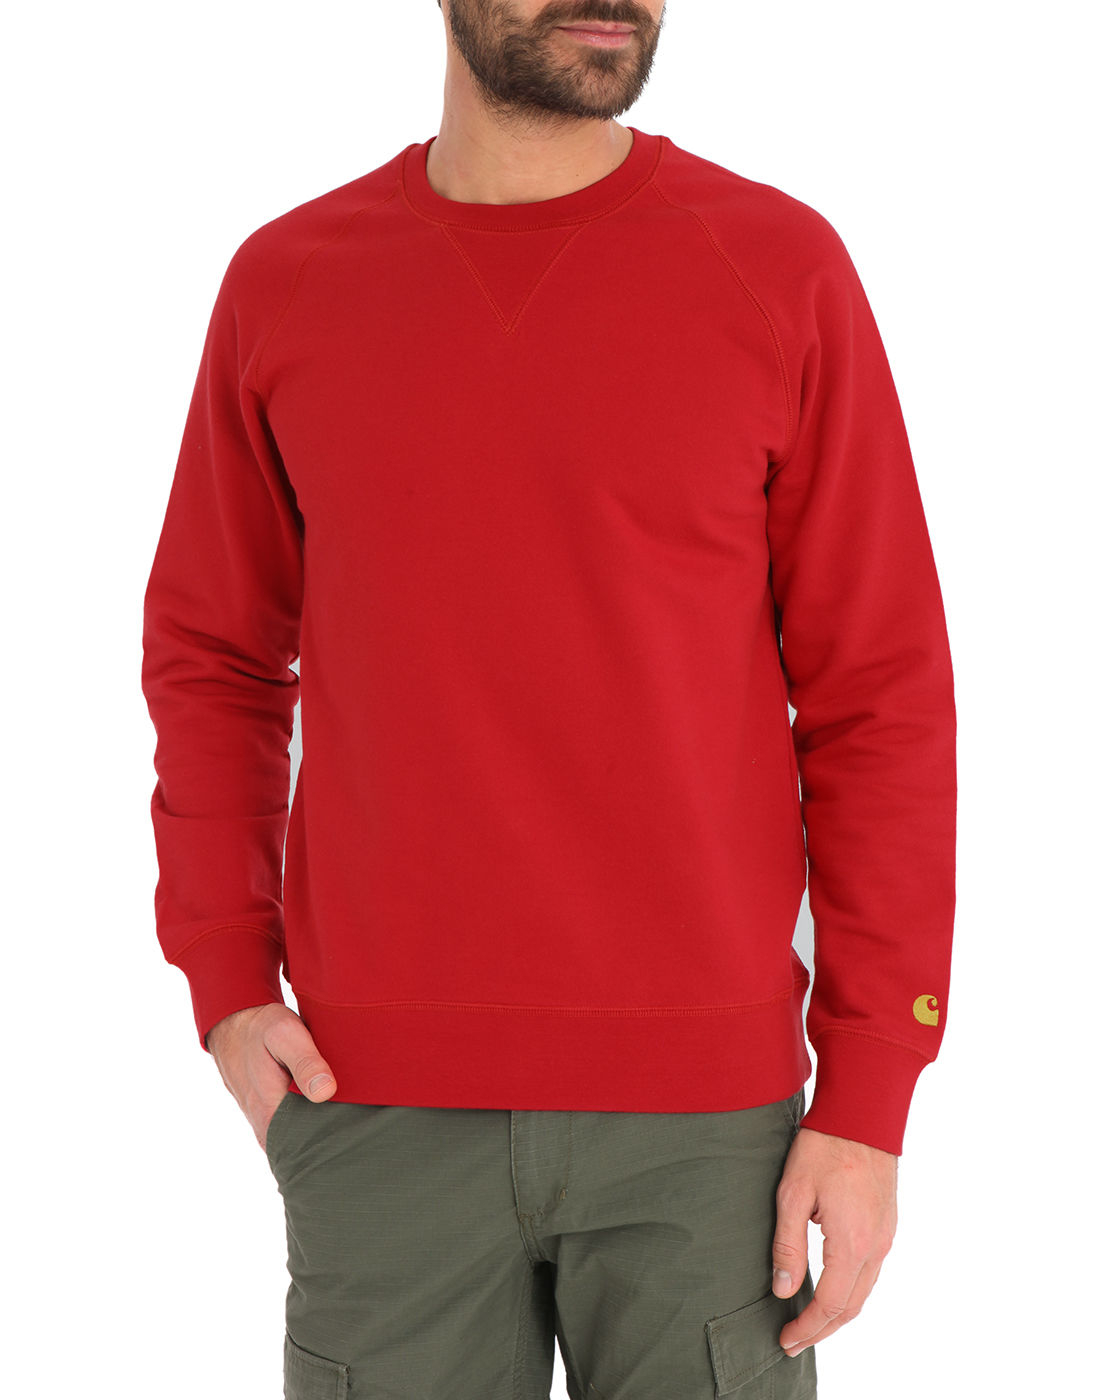 carhartt red chase sweater in red for men lyst. Black Bedroom Furniture Sets. Home Design Ideas